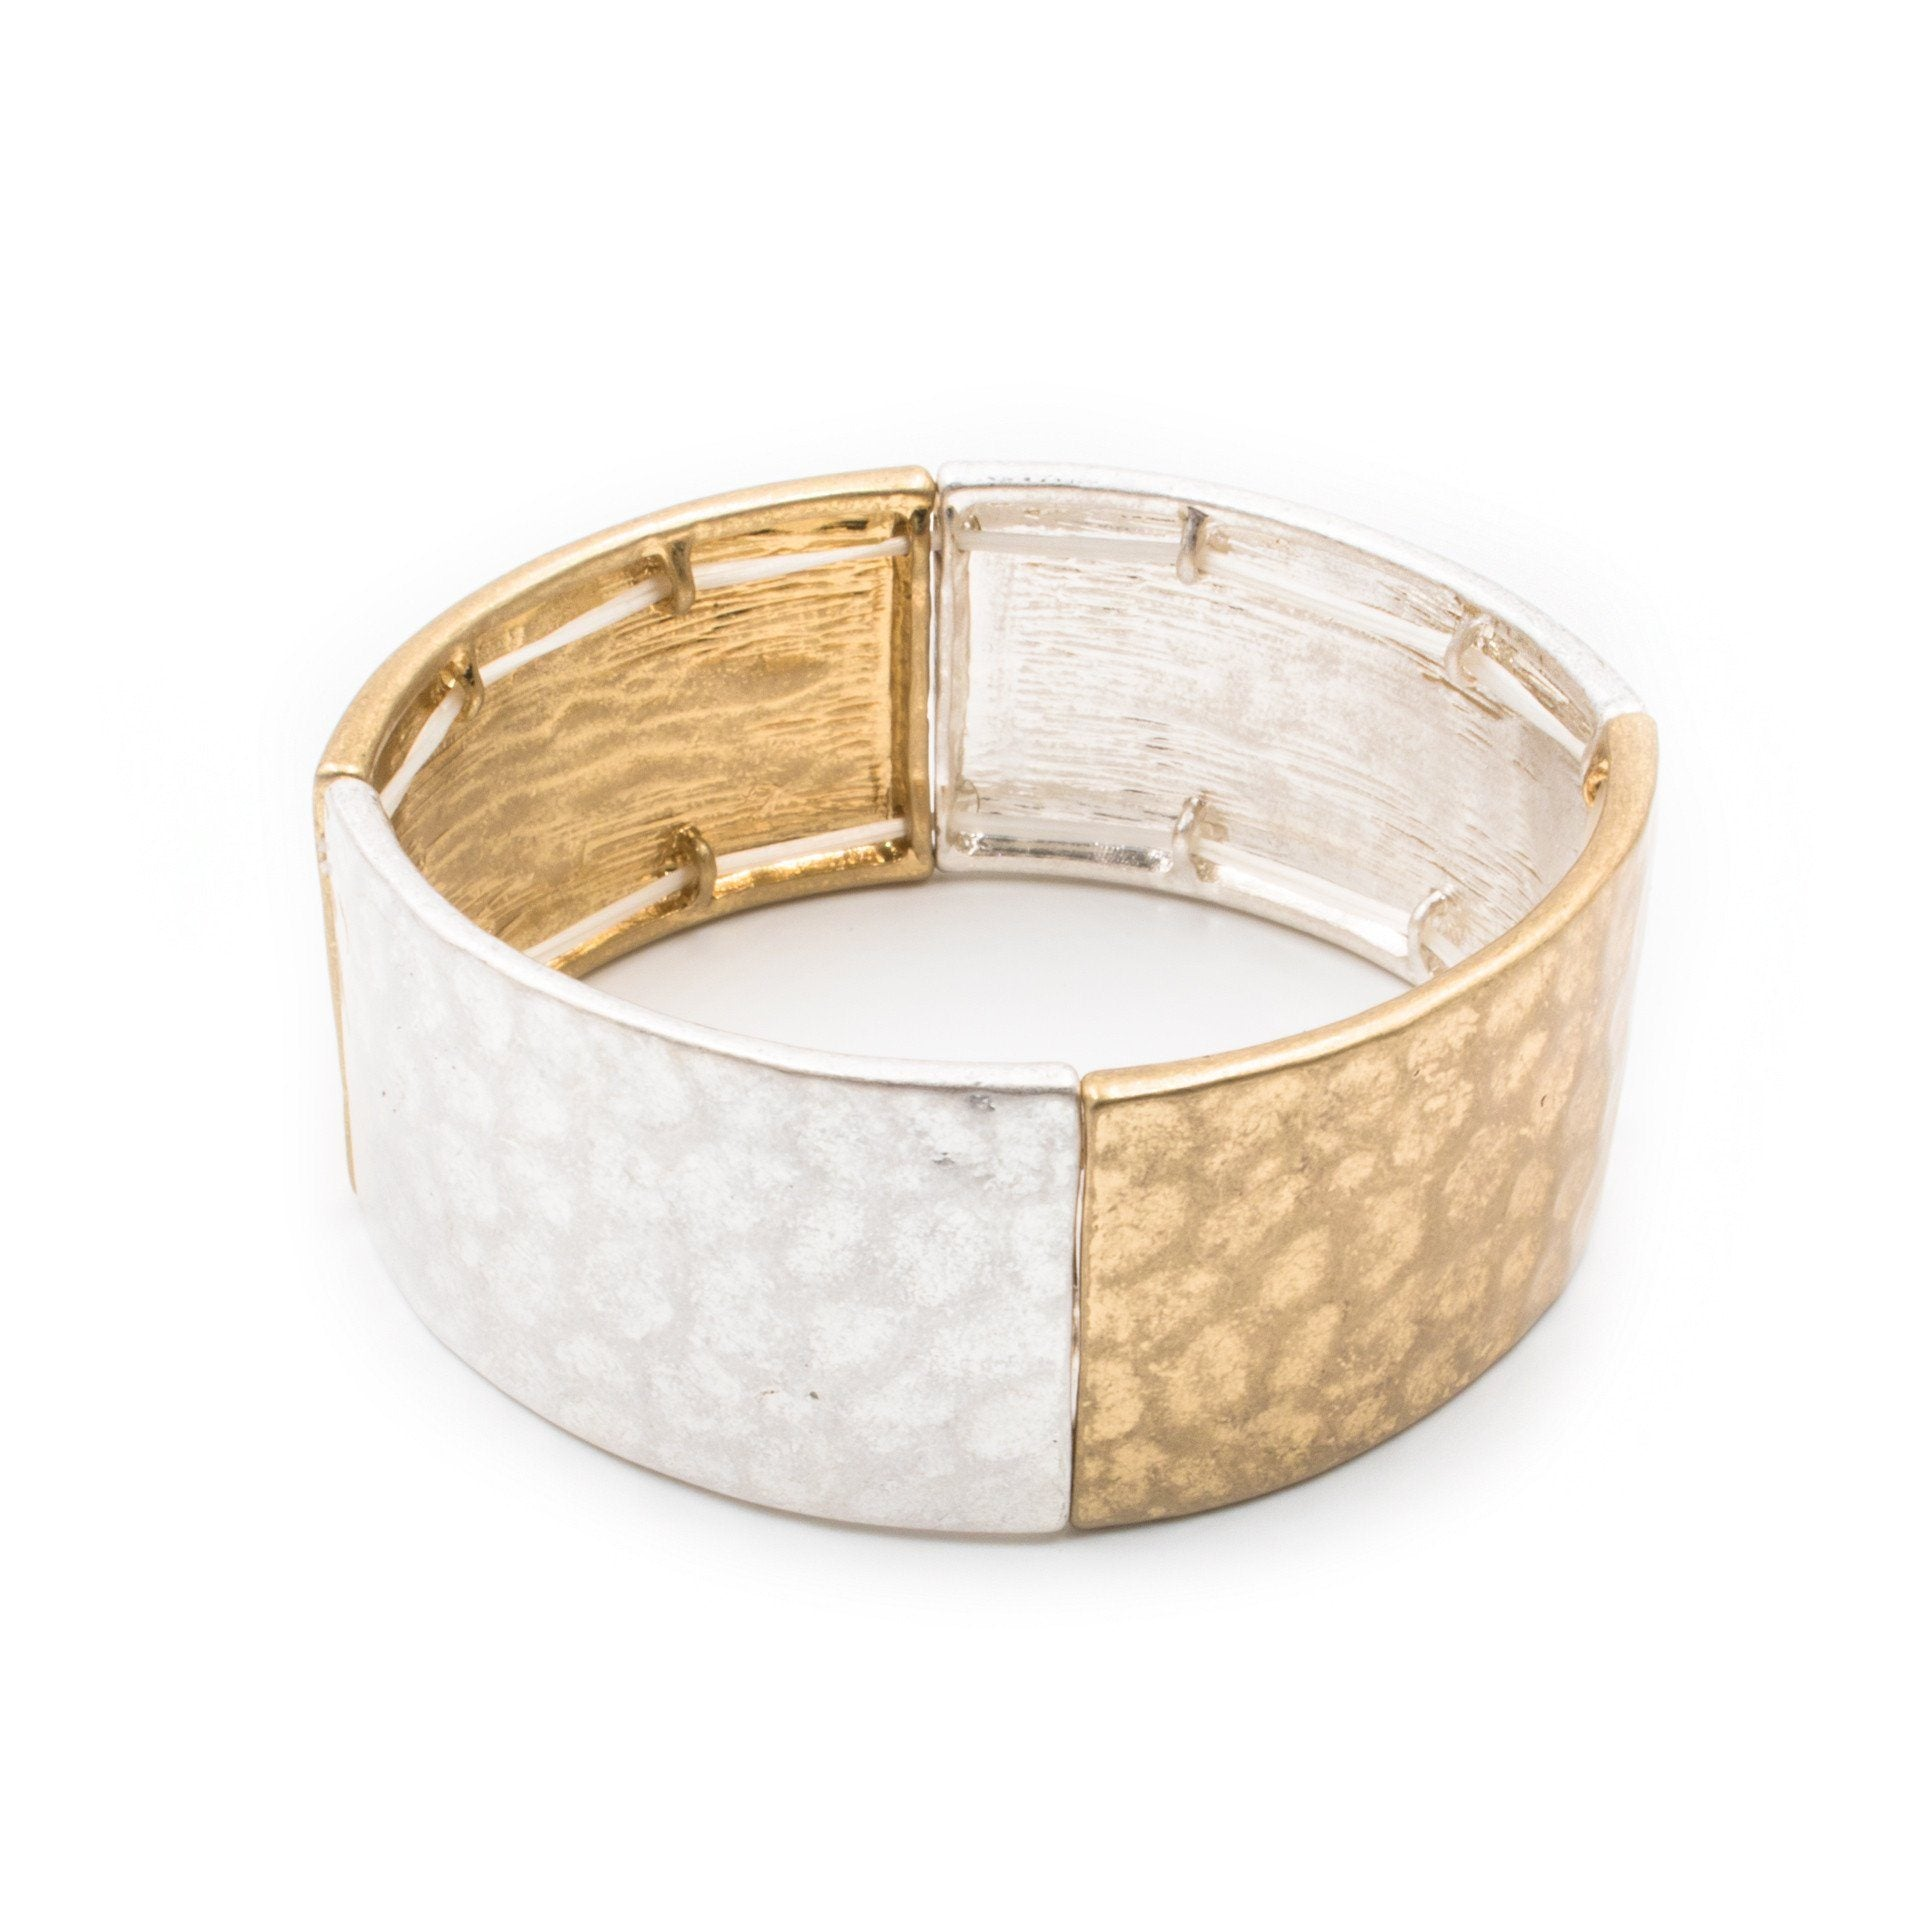 Hammered Silver & Gold Two Tone Stretch Bracelet - Arlo and Arrows